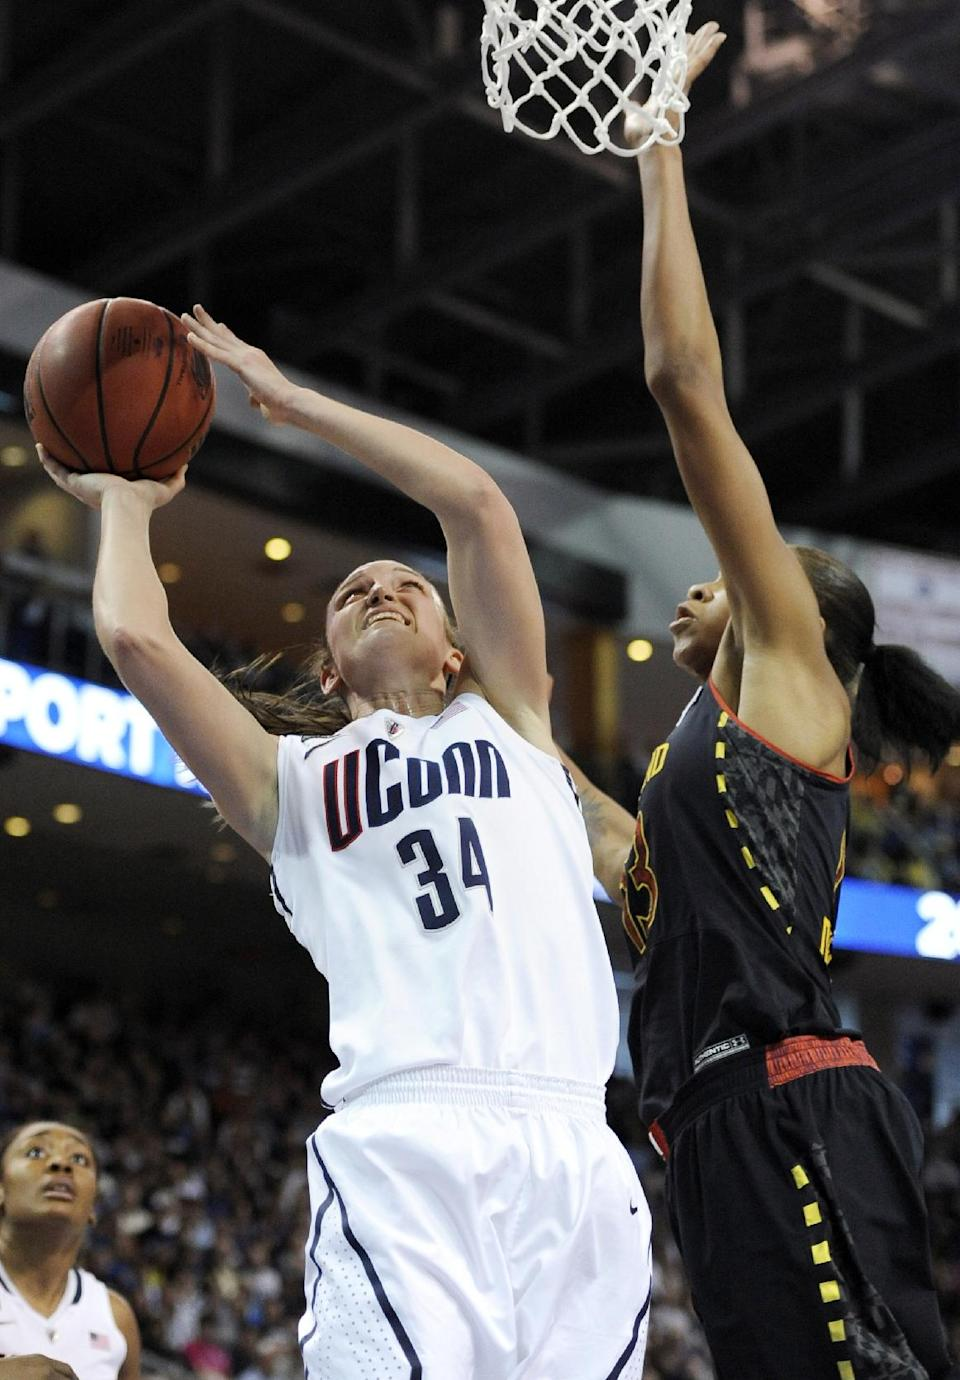 Connecticut guard Kelly Faris (34) shoots against Maryland center Alicia DeVaughn, right, during the first half of a women's NCAA college regional semifinal basketball game in Bridgeport, Conn., Saturday, March 30, 2013. (AP Photo/Jessica Hill)